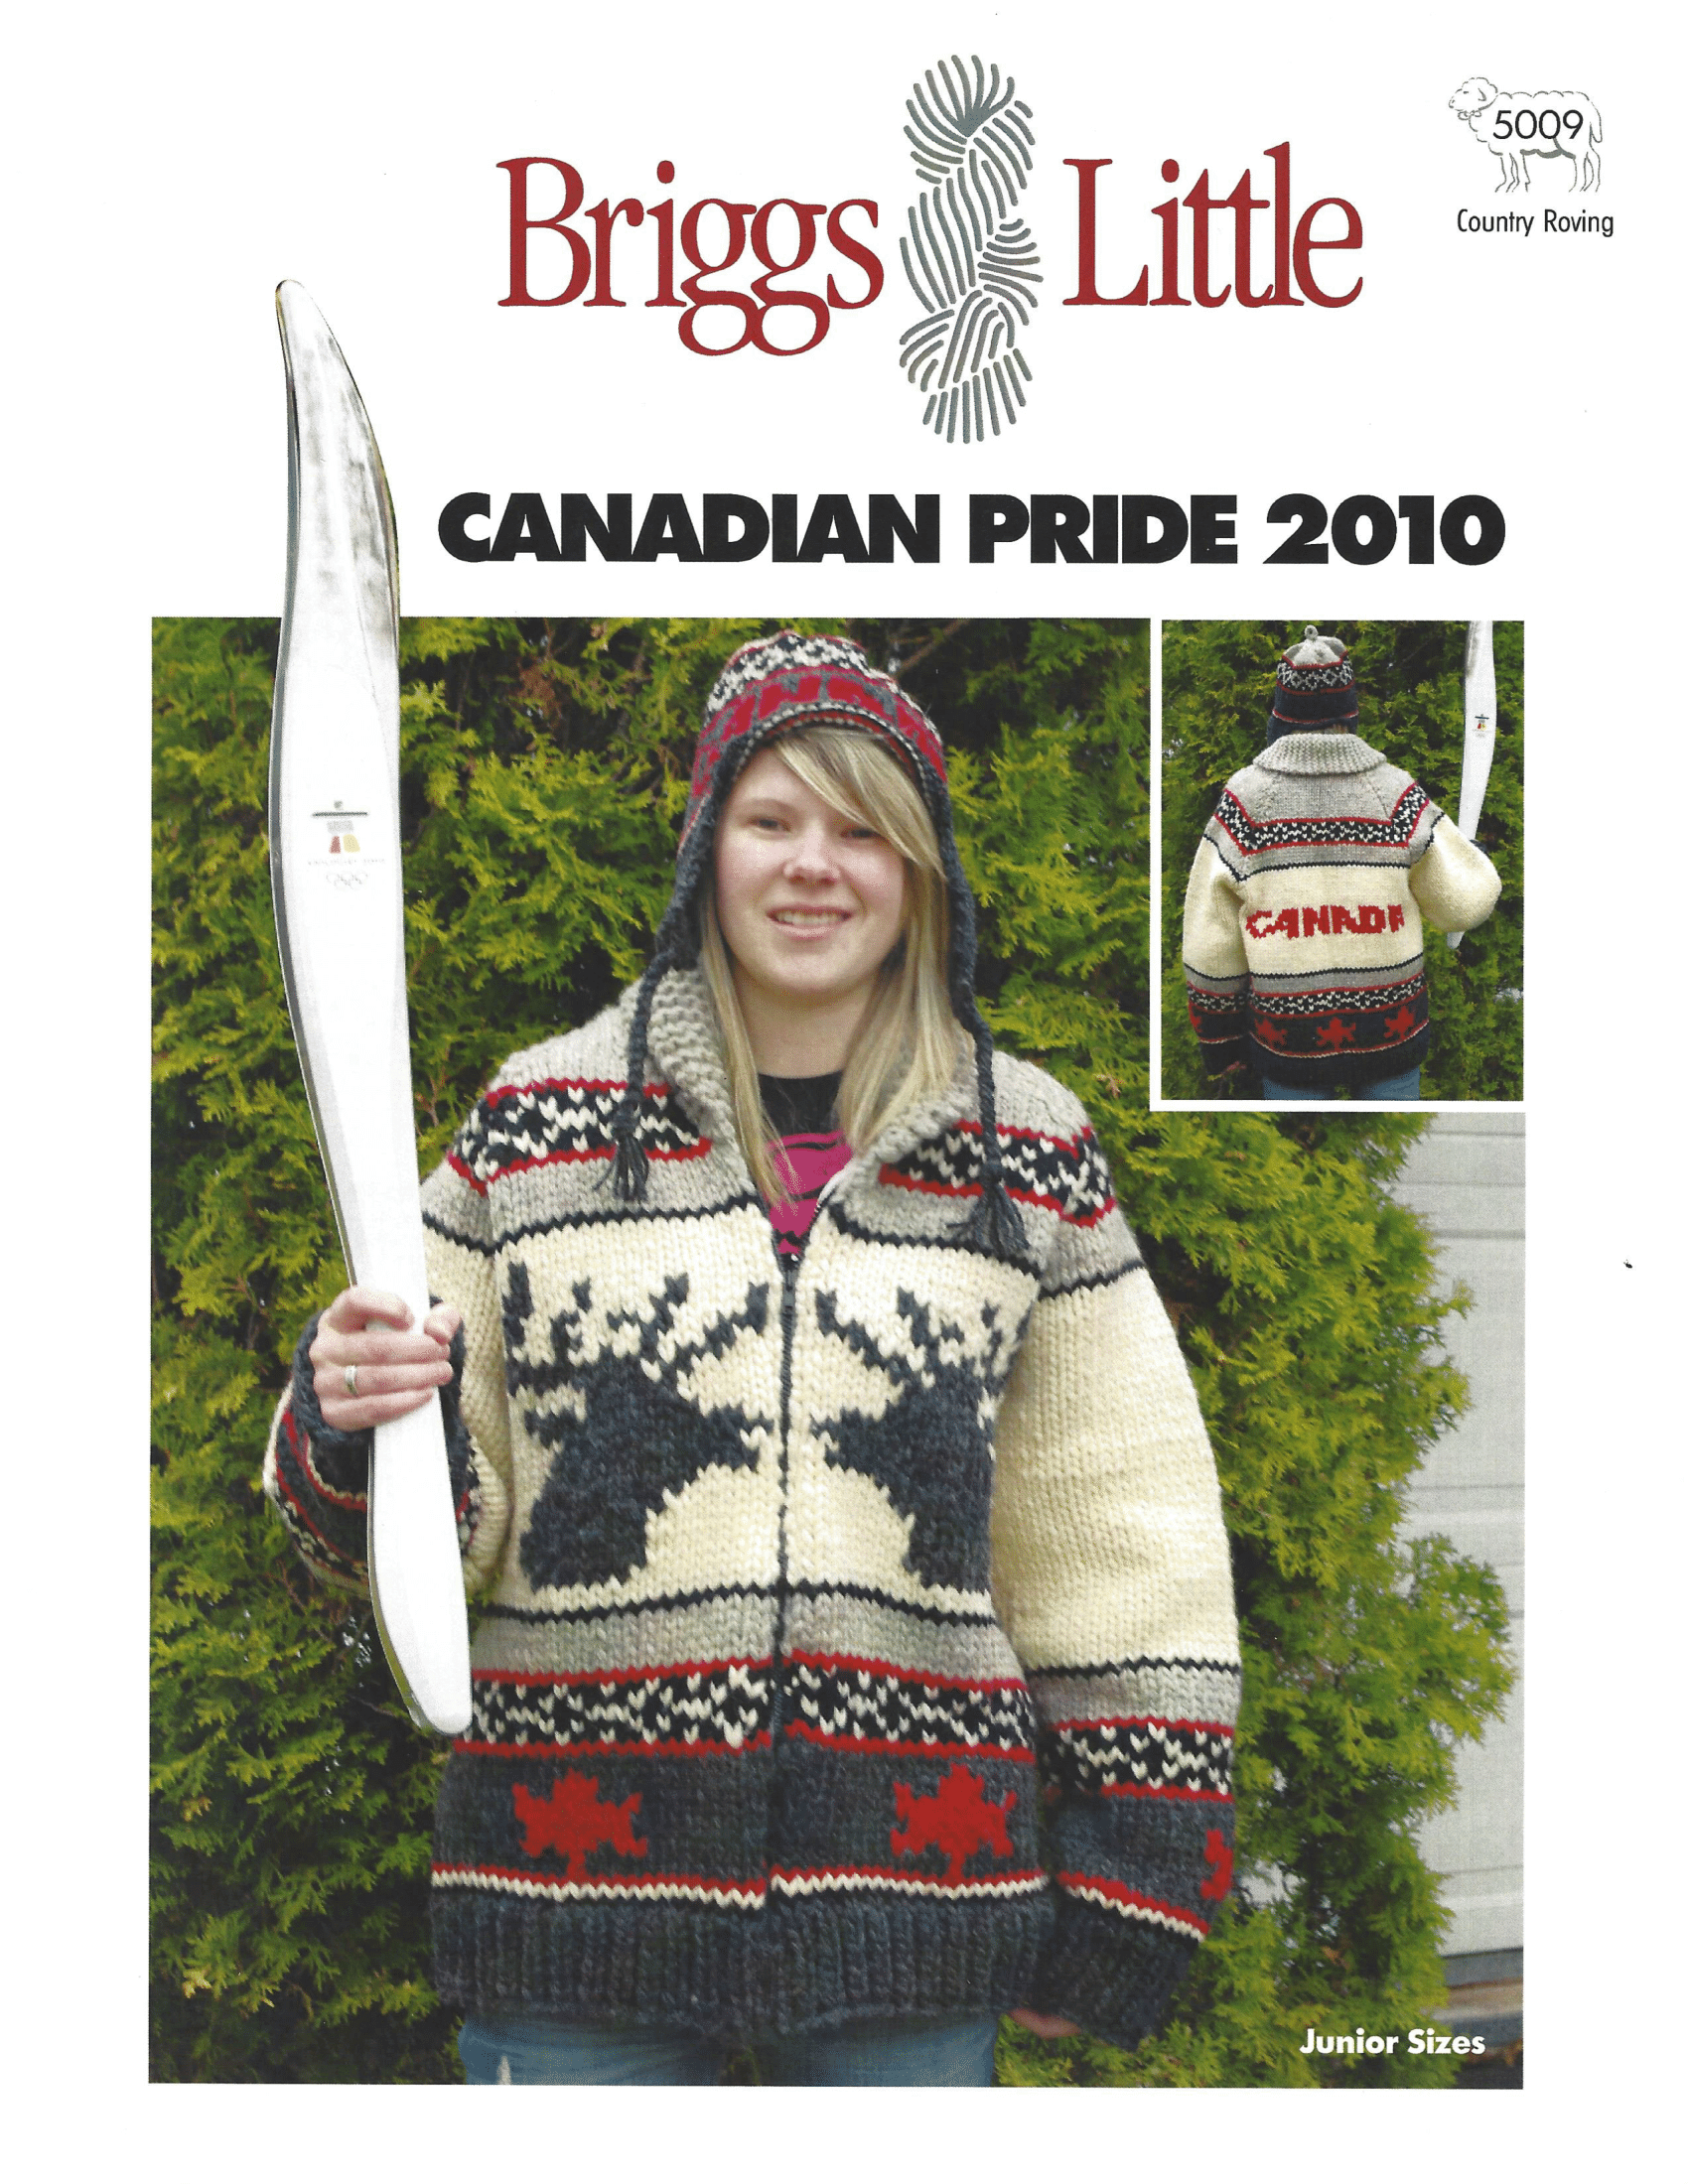 Canadian Pride Youth Wool Knitting Yarn From Briggs Little